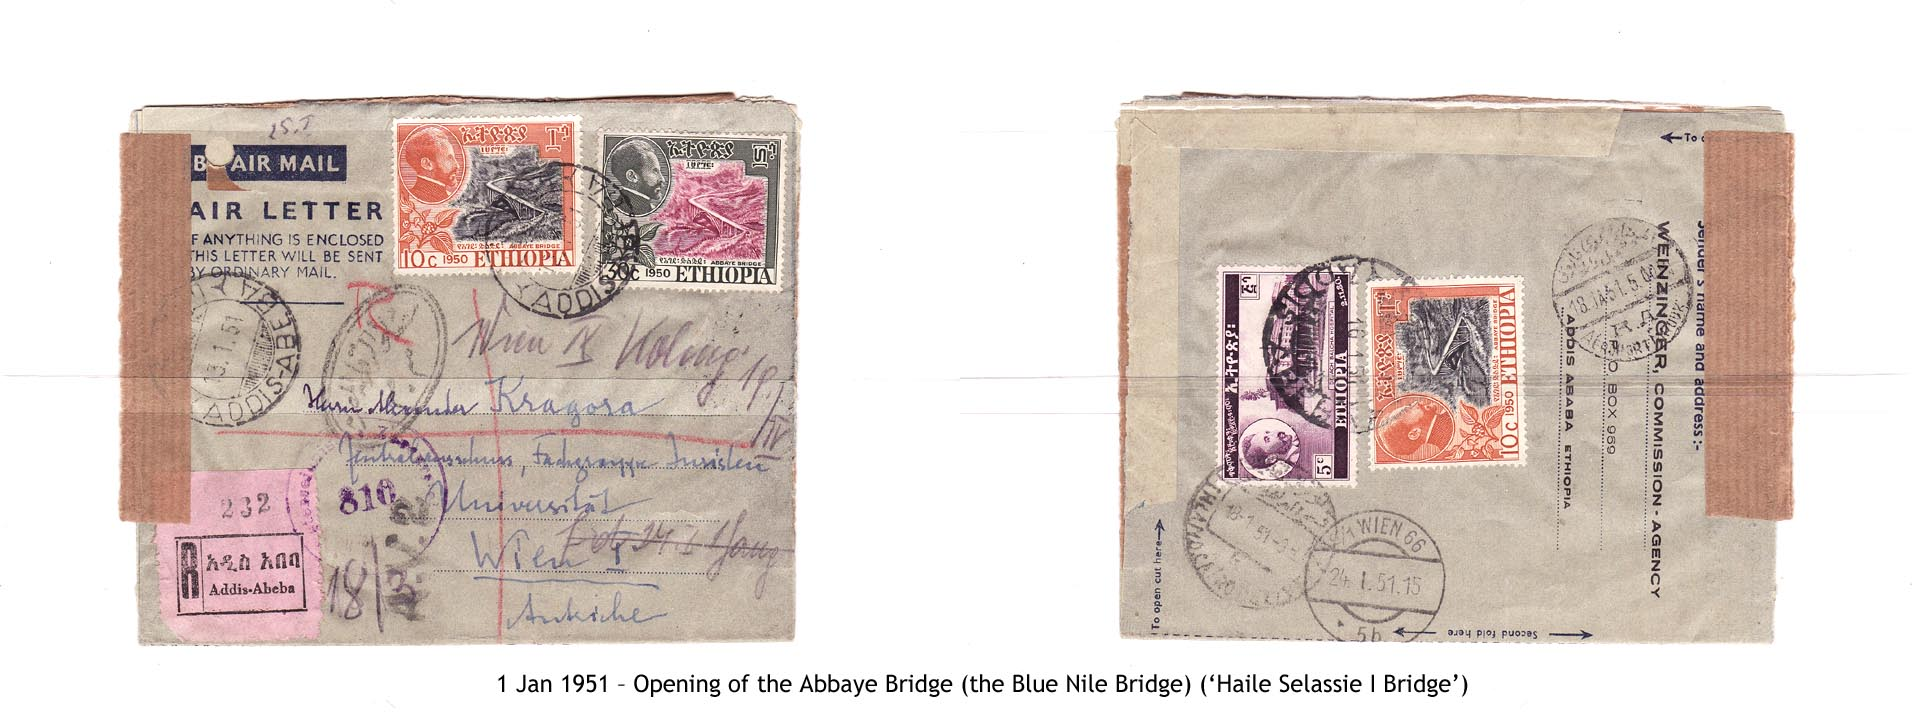 19510101 – Opening of the Abbaye Bridge (the Blue Nile Bridge) ('Haile Selassie I Bridge')